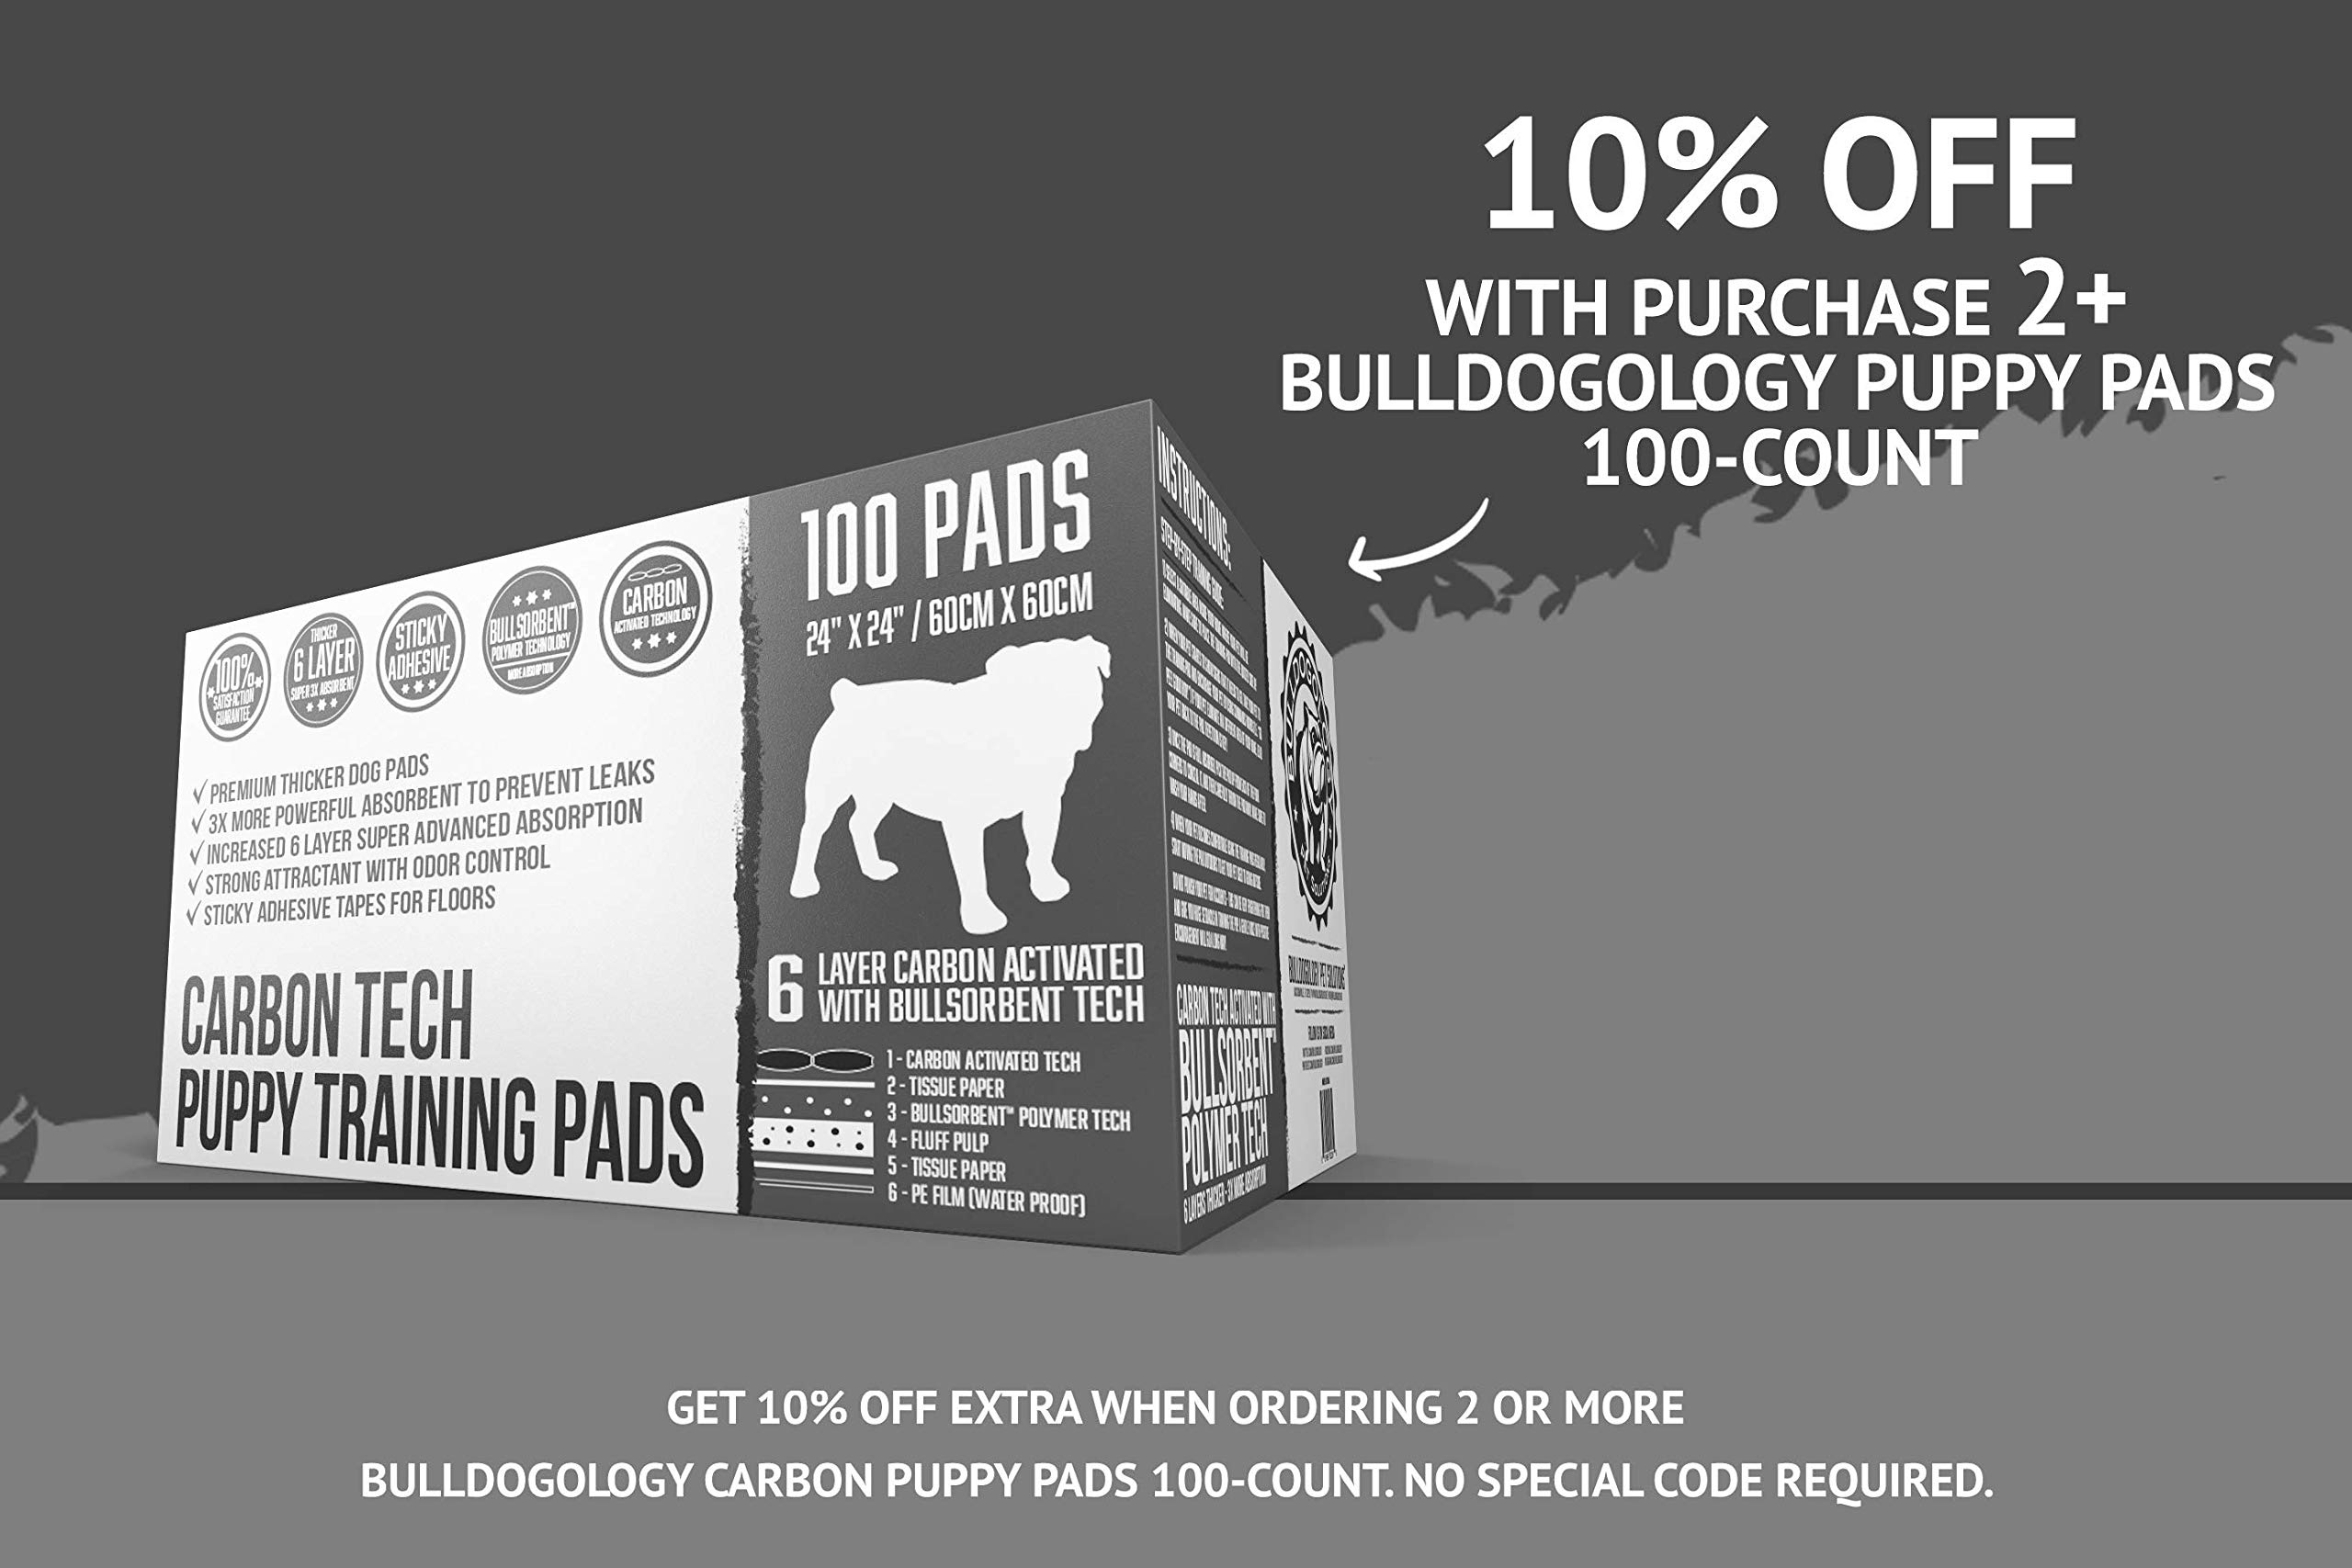 Bulldogology Carbon Black Puppy Pee Pads with Adhesive Sticky Tape - Large Dog Training Wee Pads - (24x24, 100-Count)